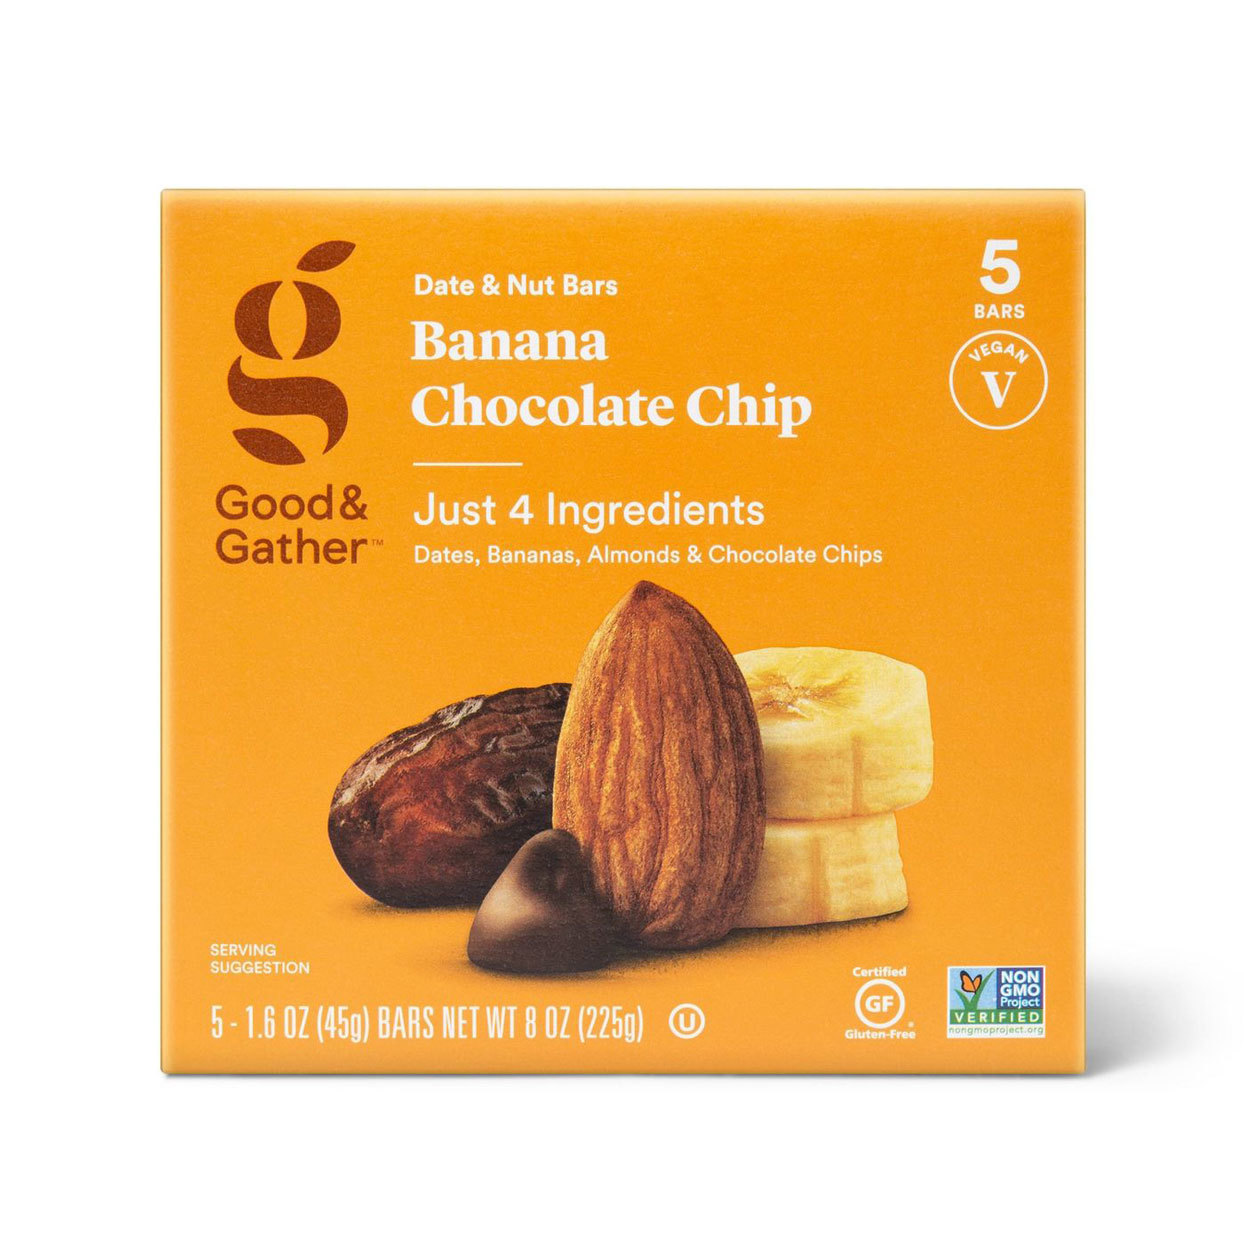 Box of Target Banana Chocolate Chip bars